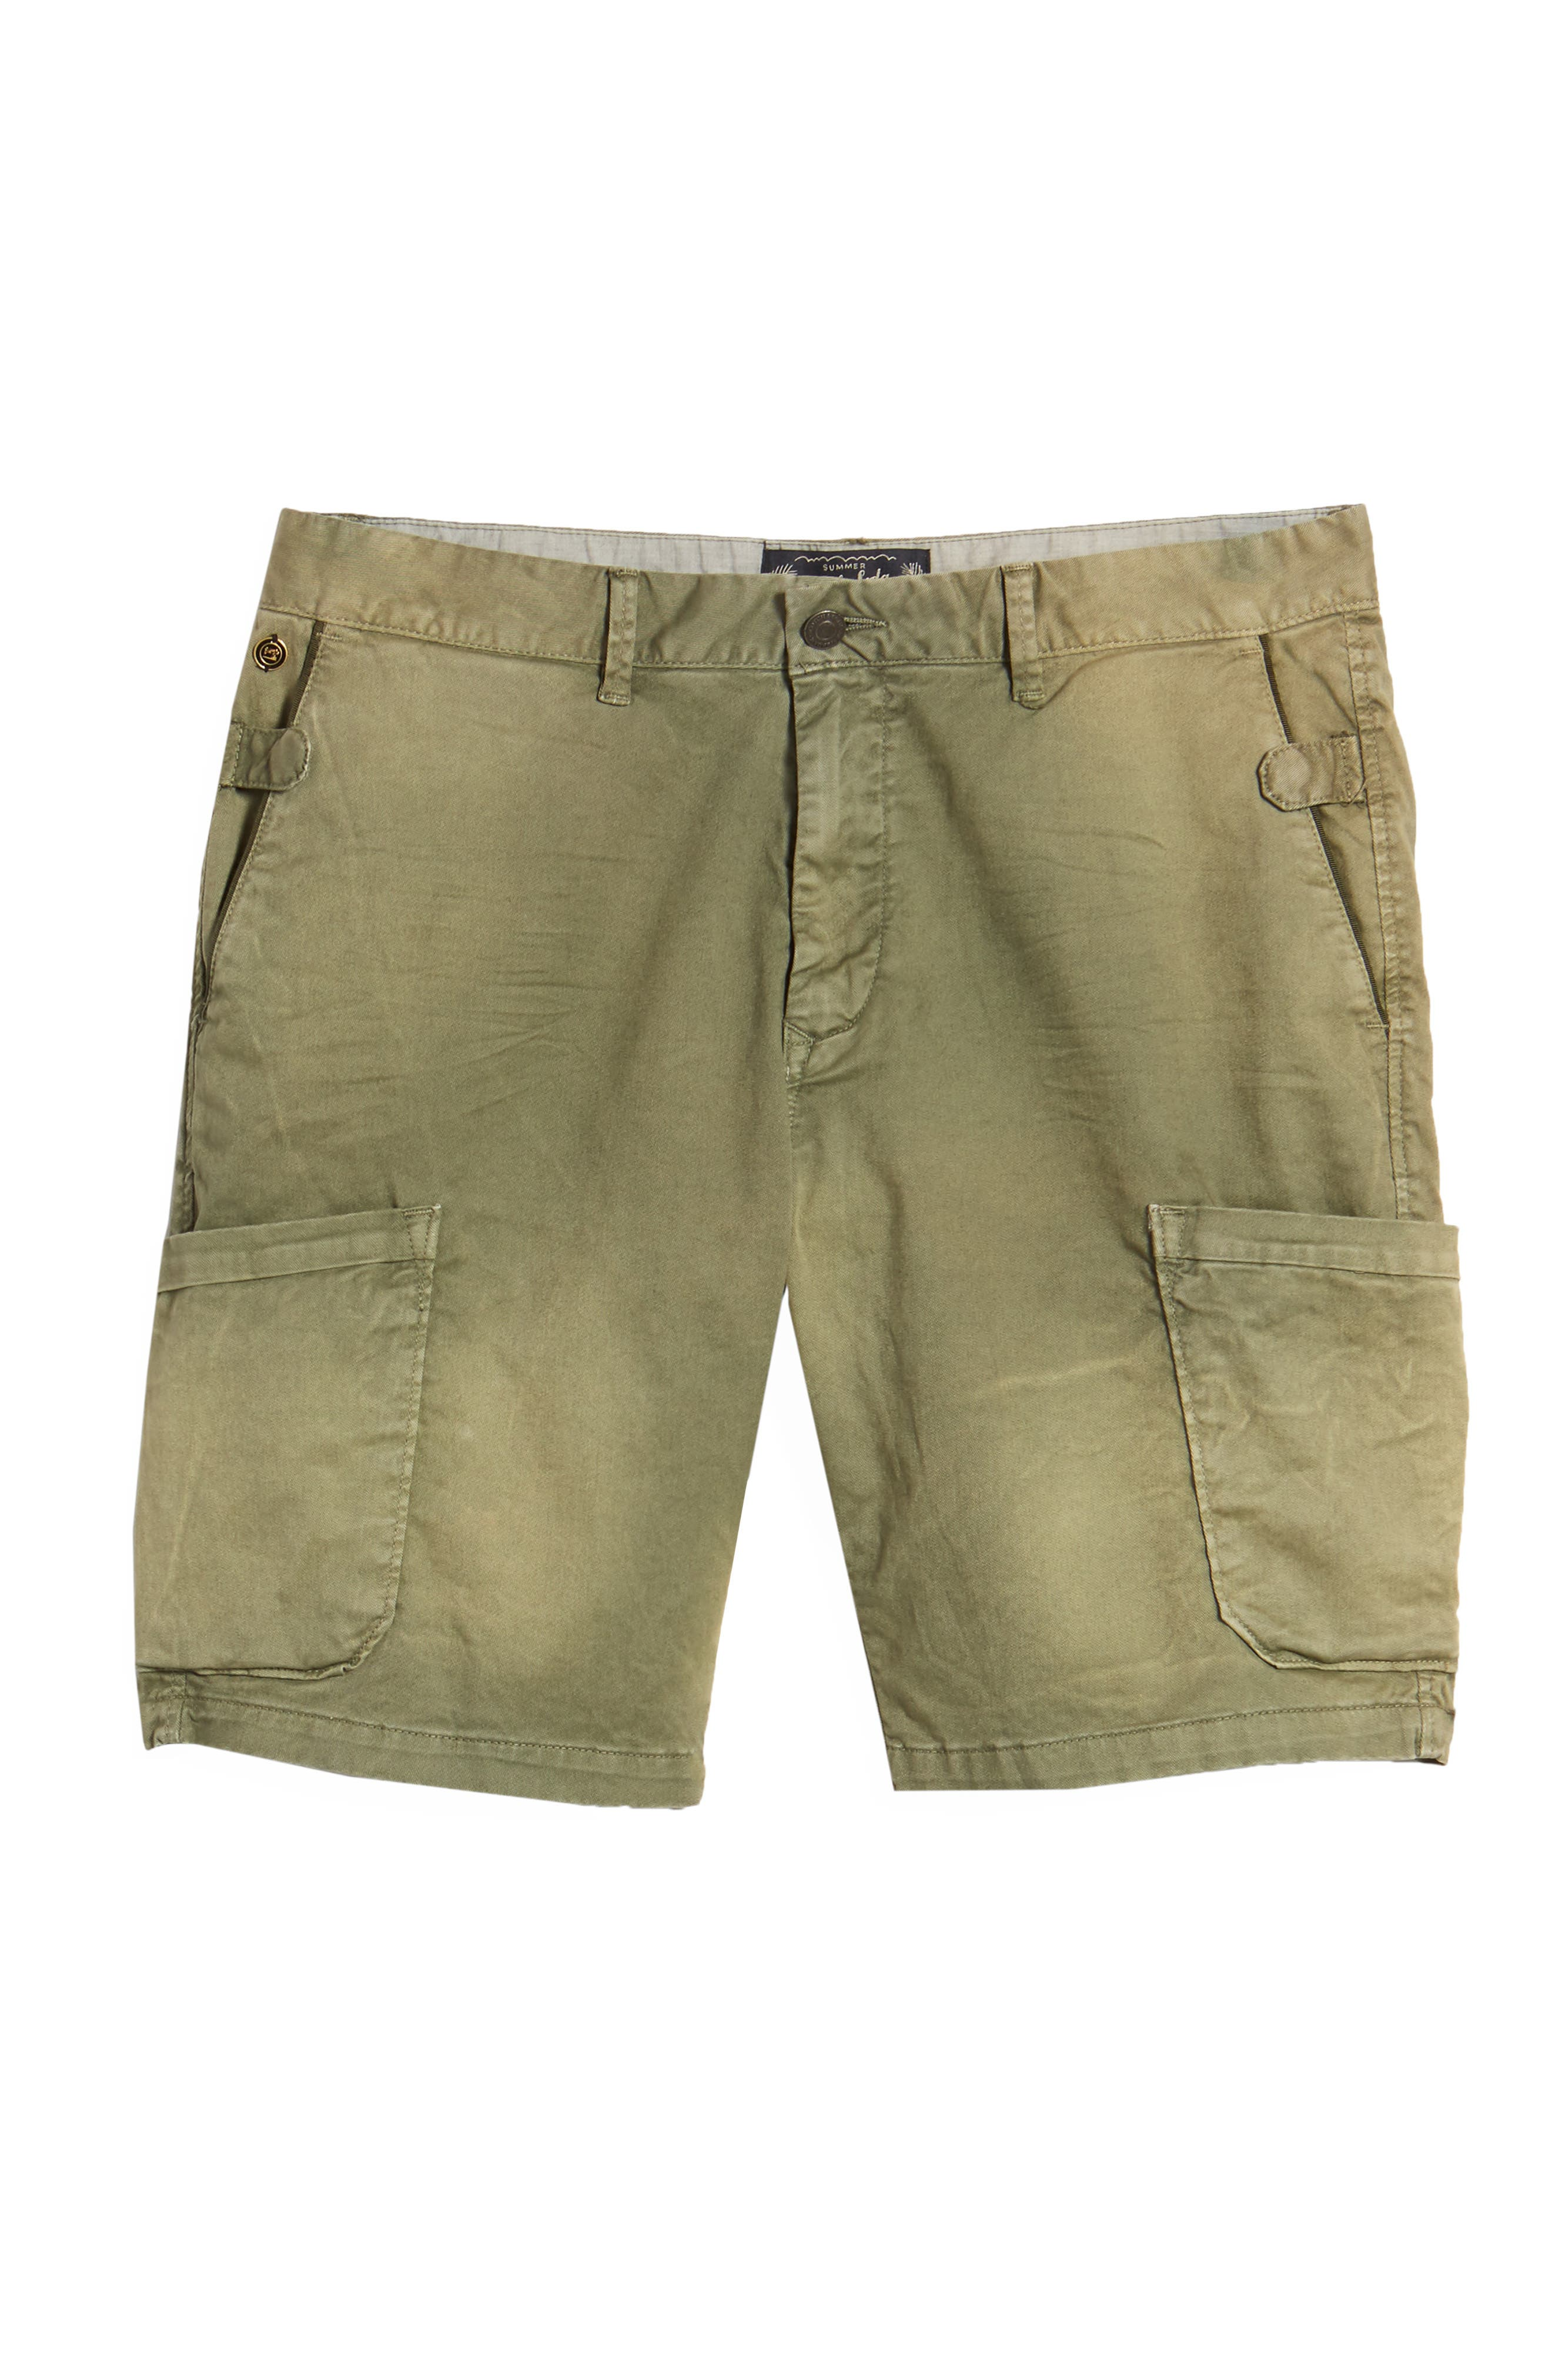 Washed Cargo Shorts,                             Alternate thumbnail 6, color,                             Army